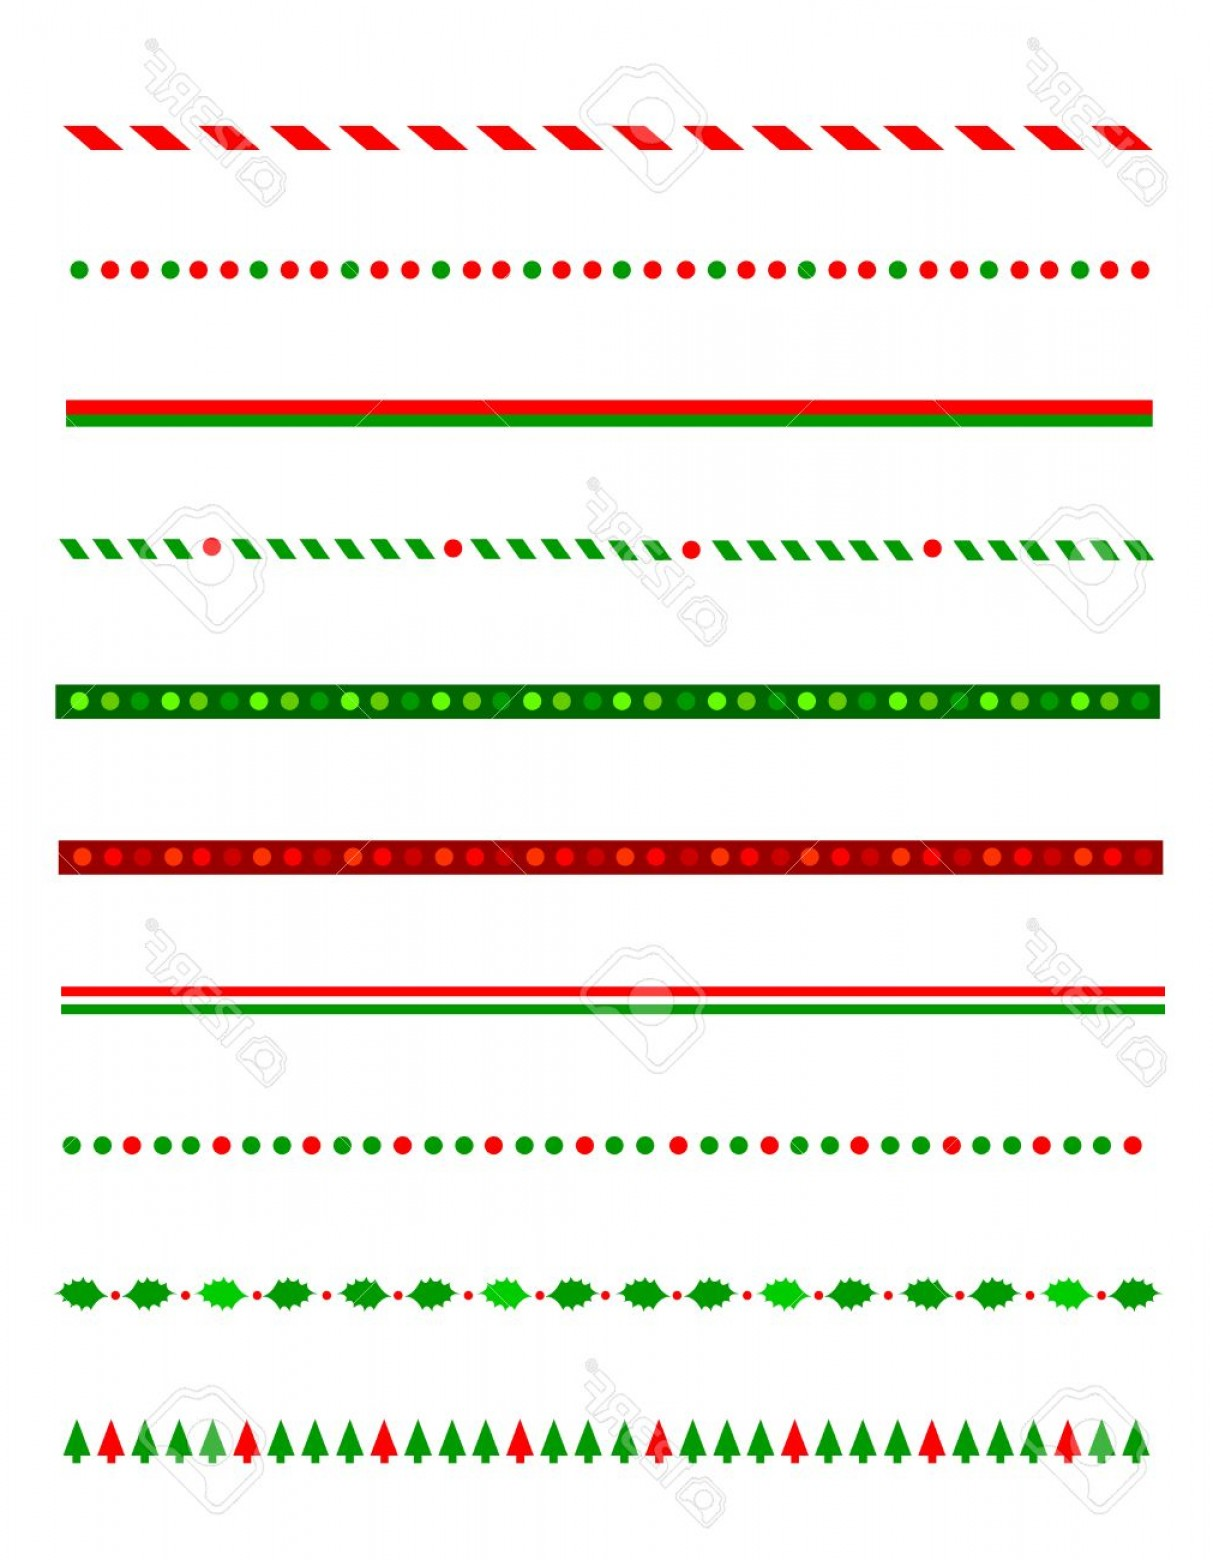 Christmas Divider Vector: Photostock Vector Collection Of Simple Christmas Themed Borders Divider Graphics Including Holly Border Candy Cane Pat